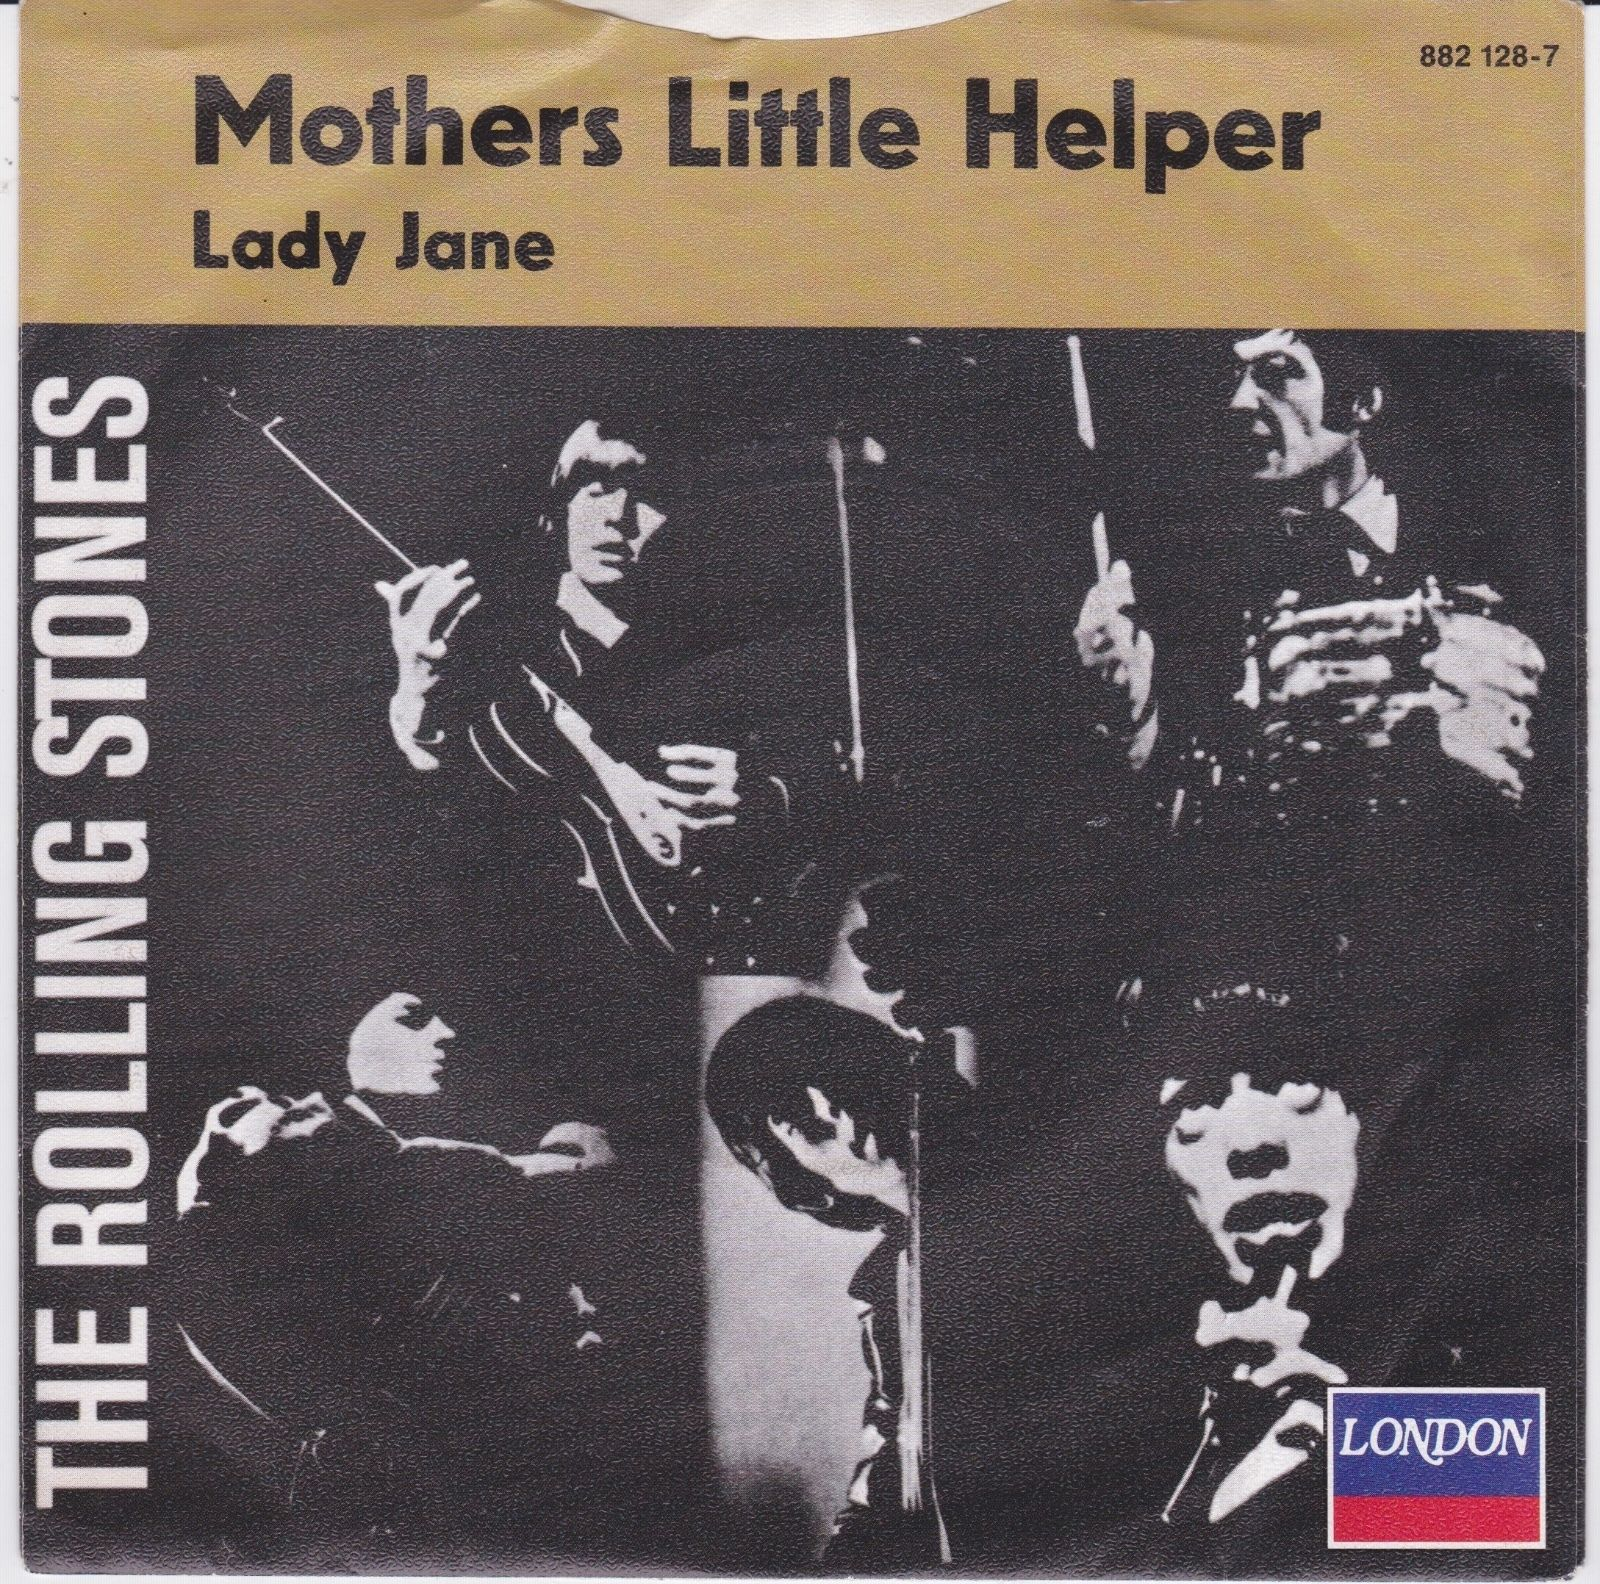 The-Rolling-Stones-Mothers-Little-Helper-_57.jpg